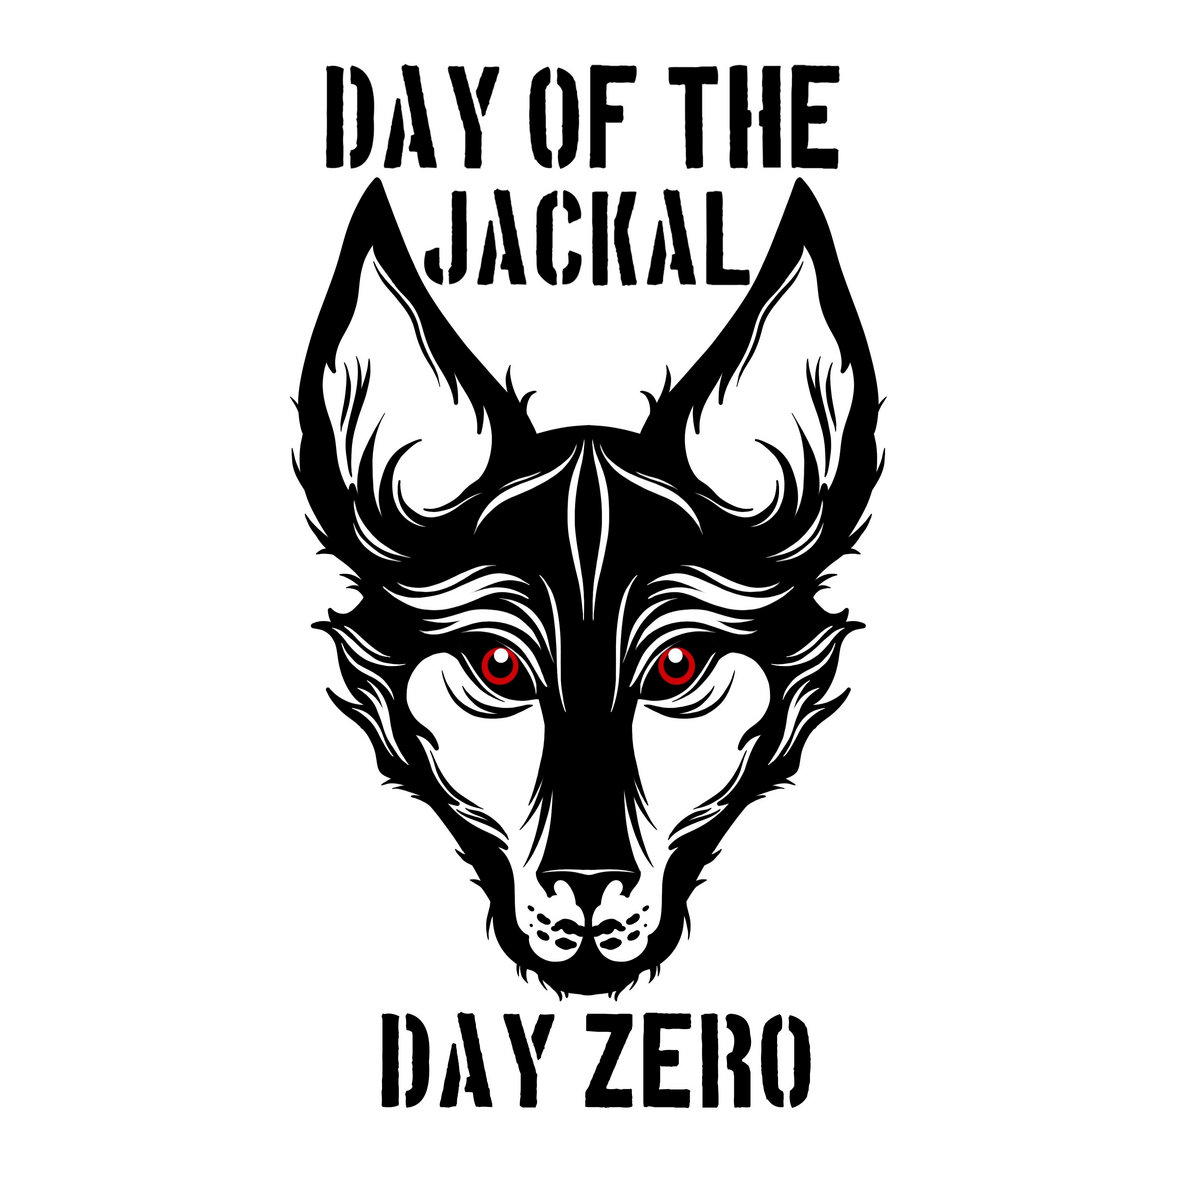 Day of the Jackal Day Zero